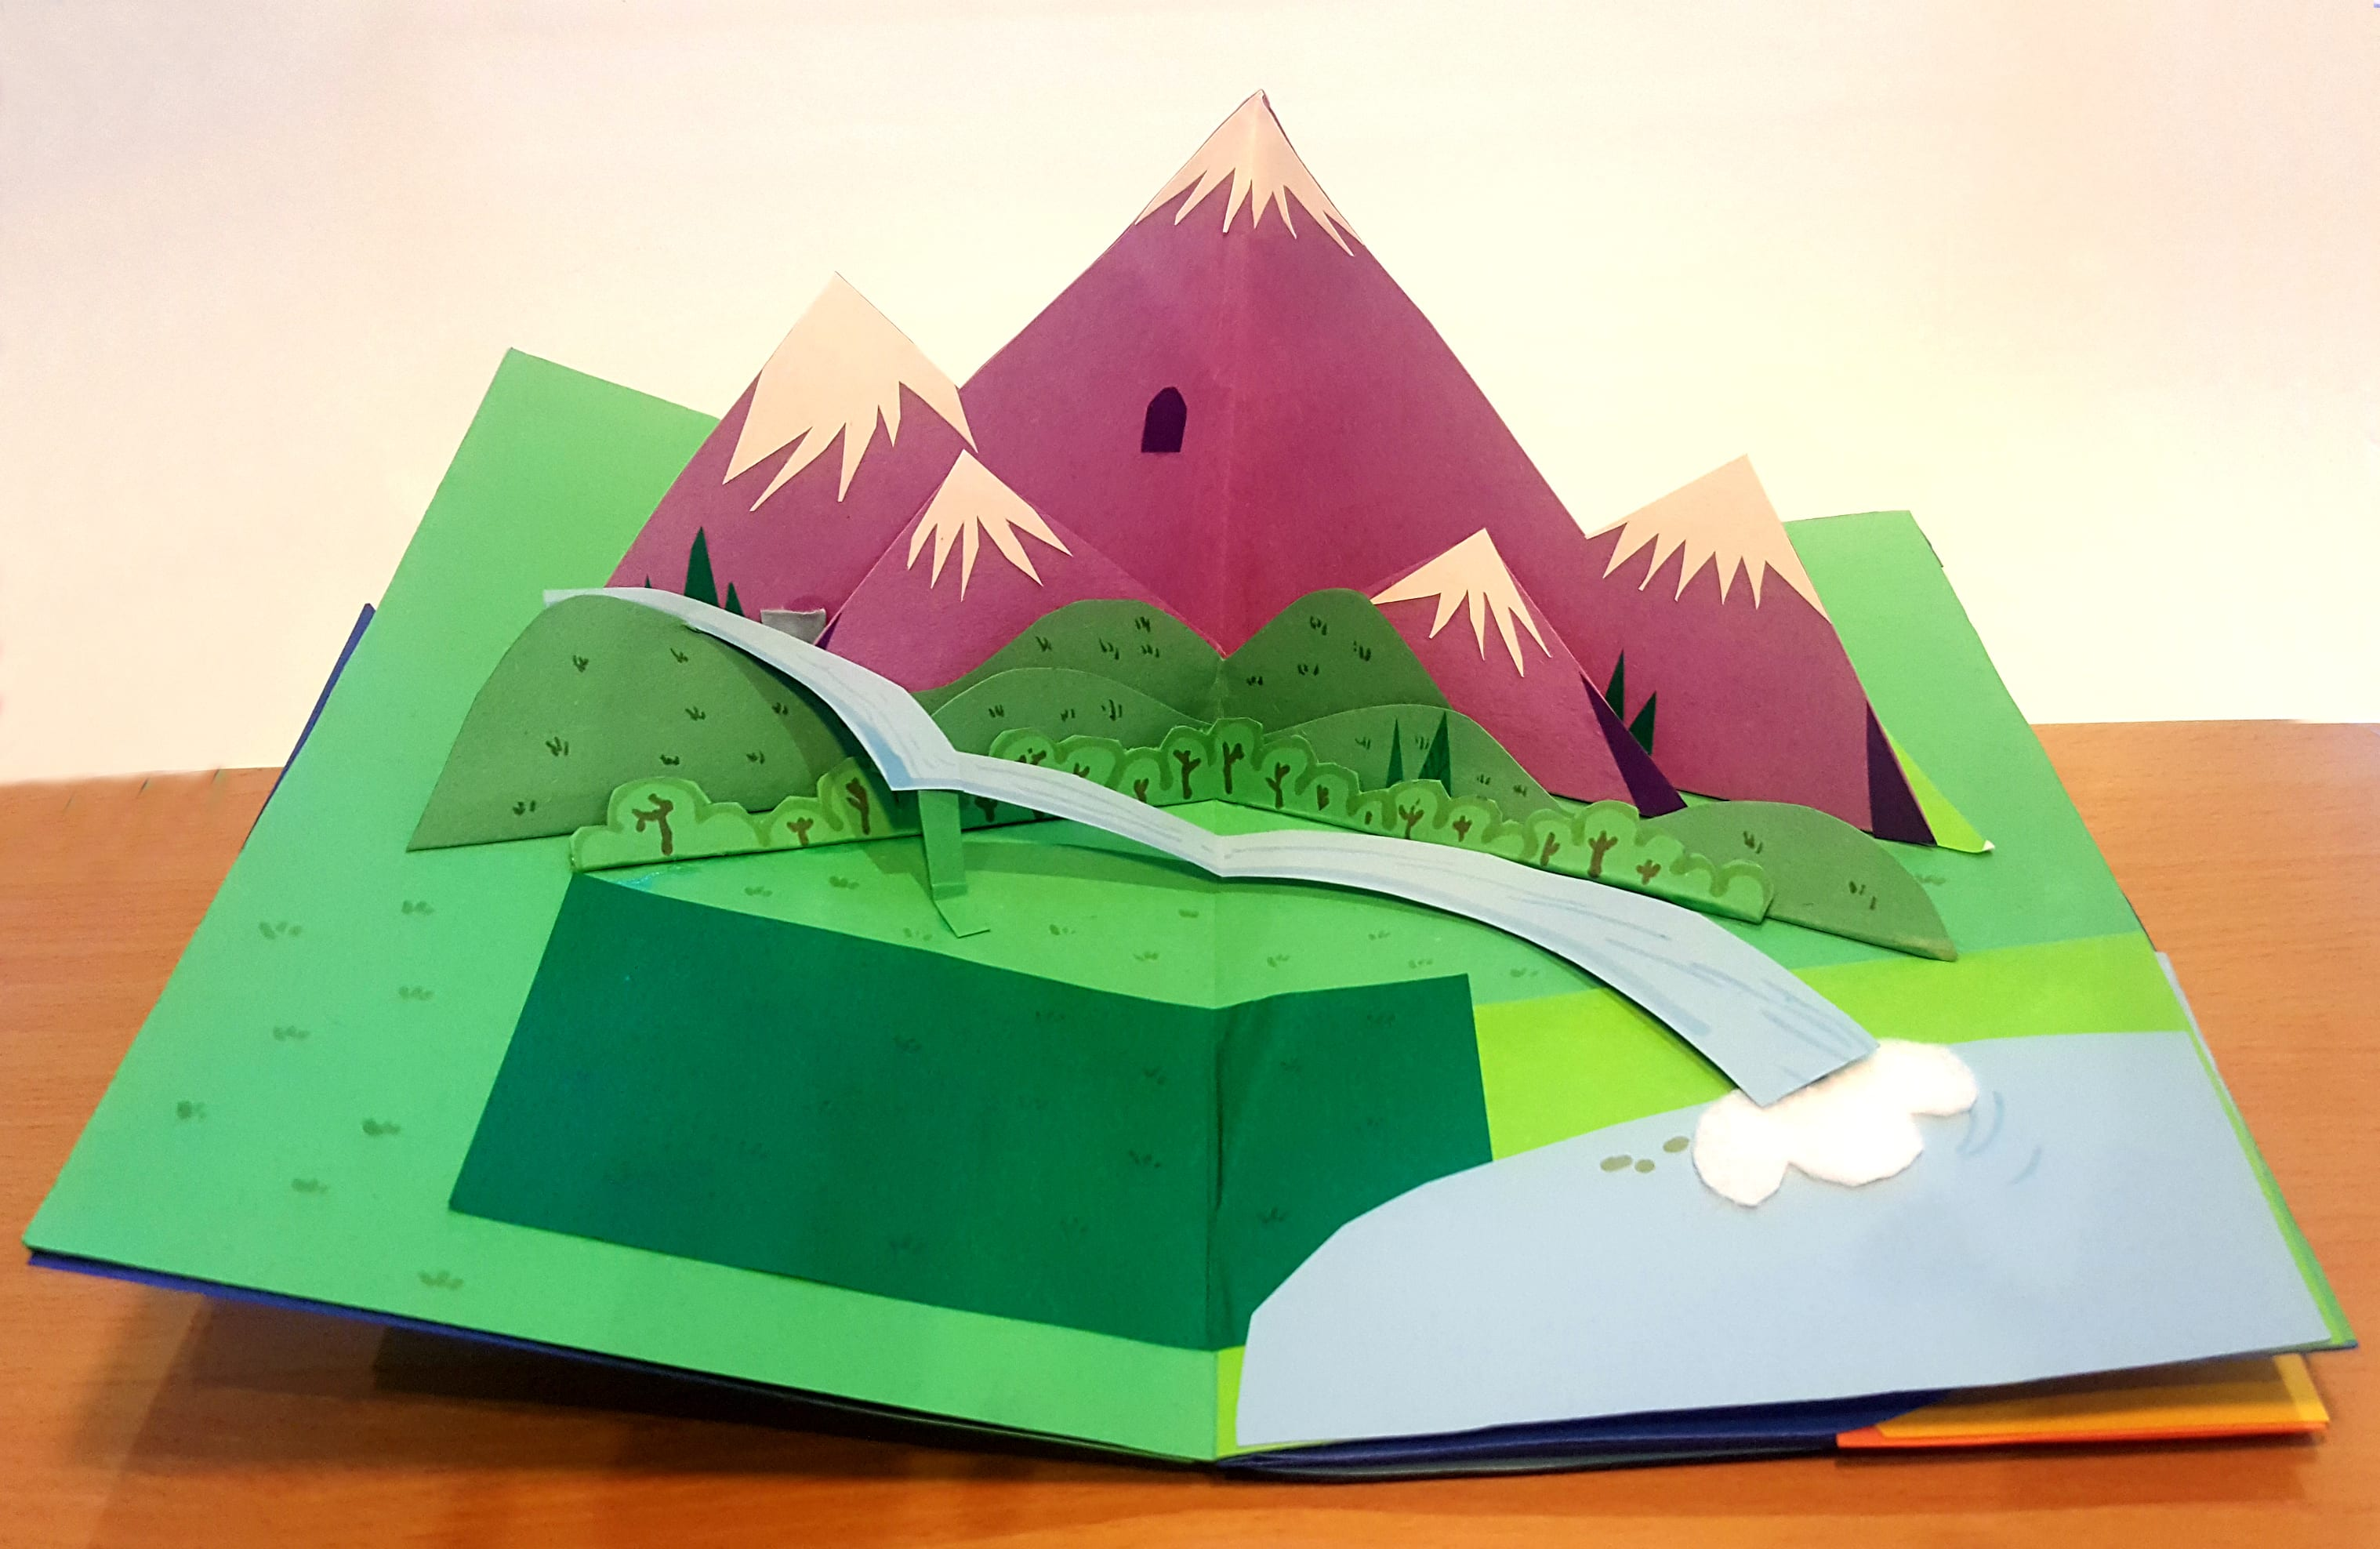 Project 1: Pop-up Book